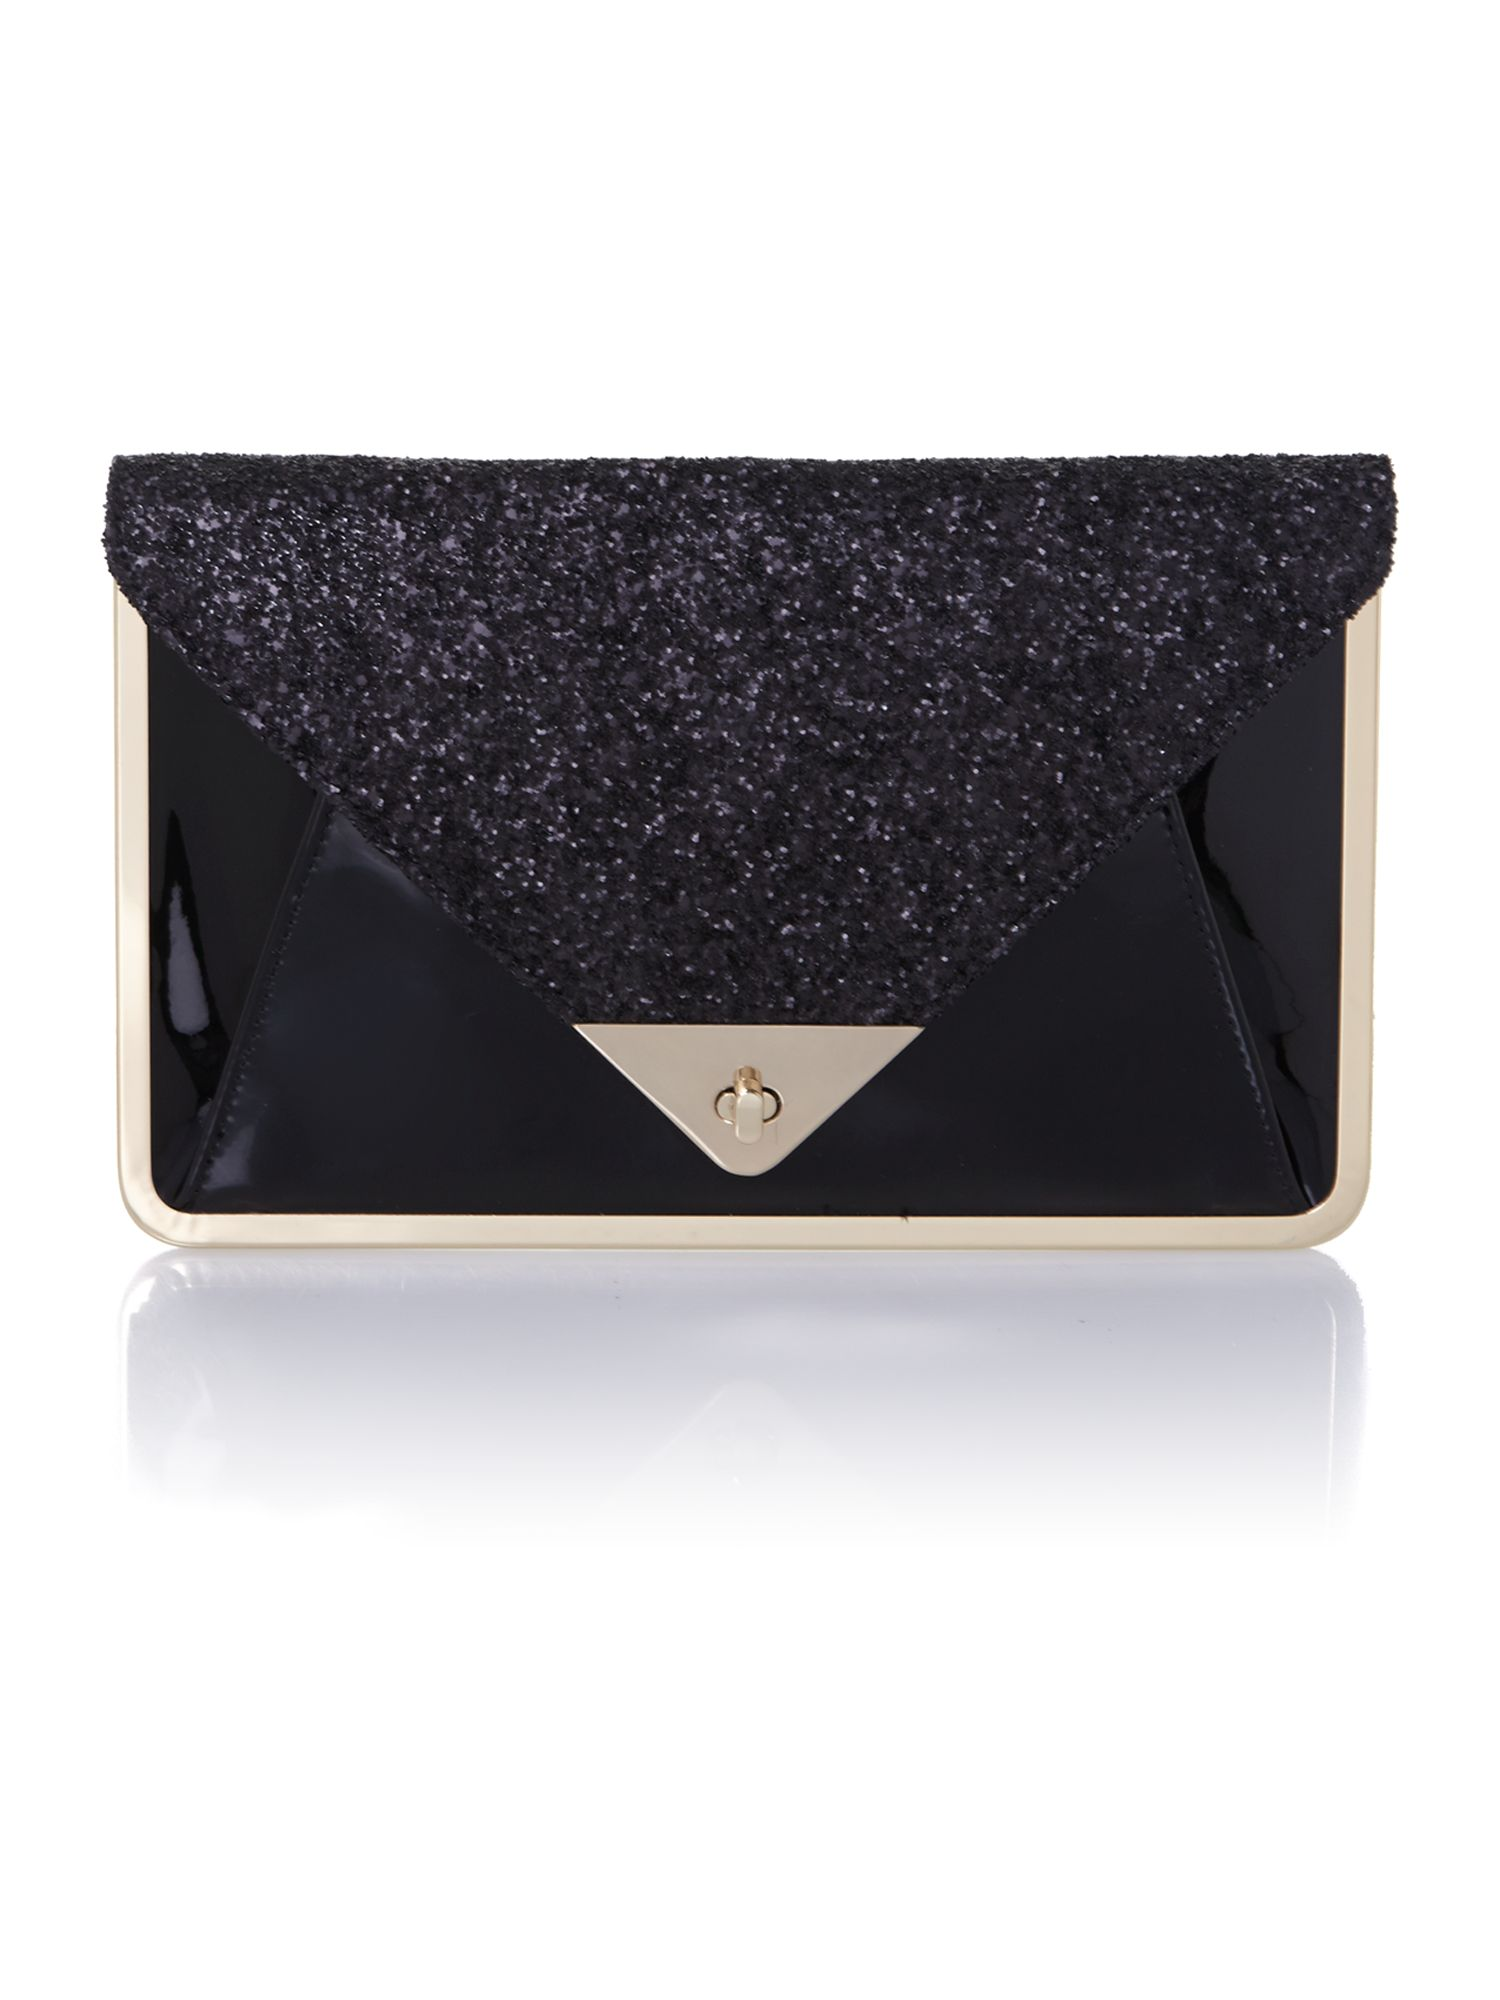 Black sparkle envelope clutch bag